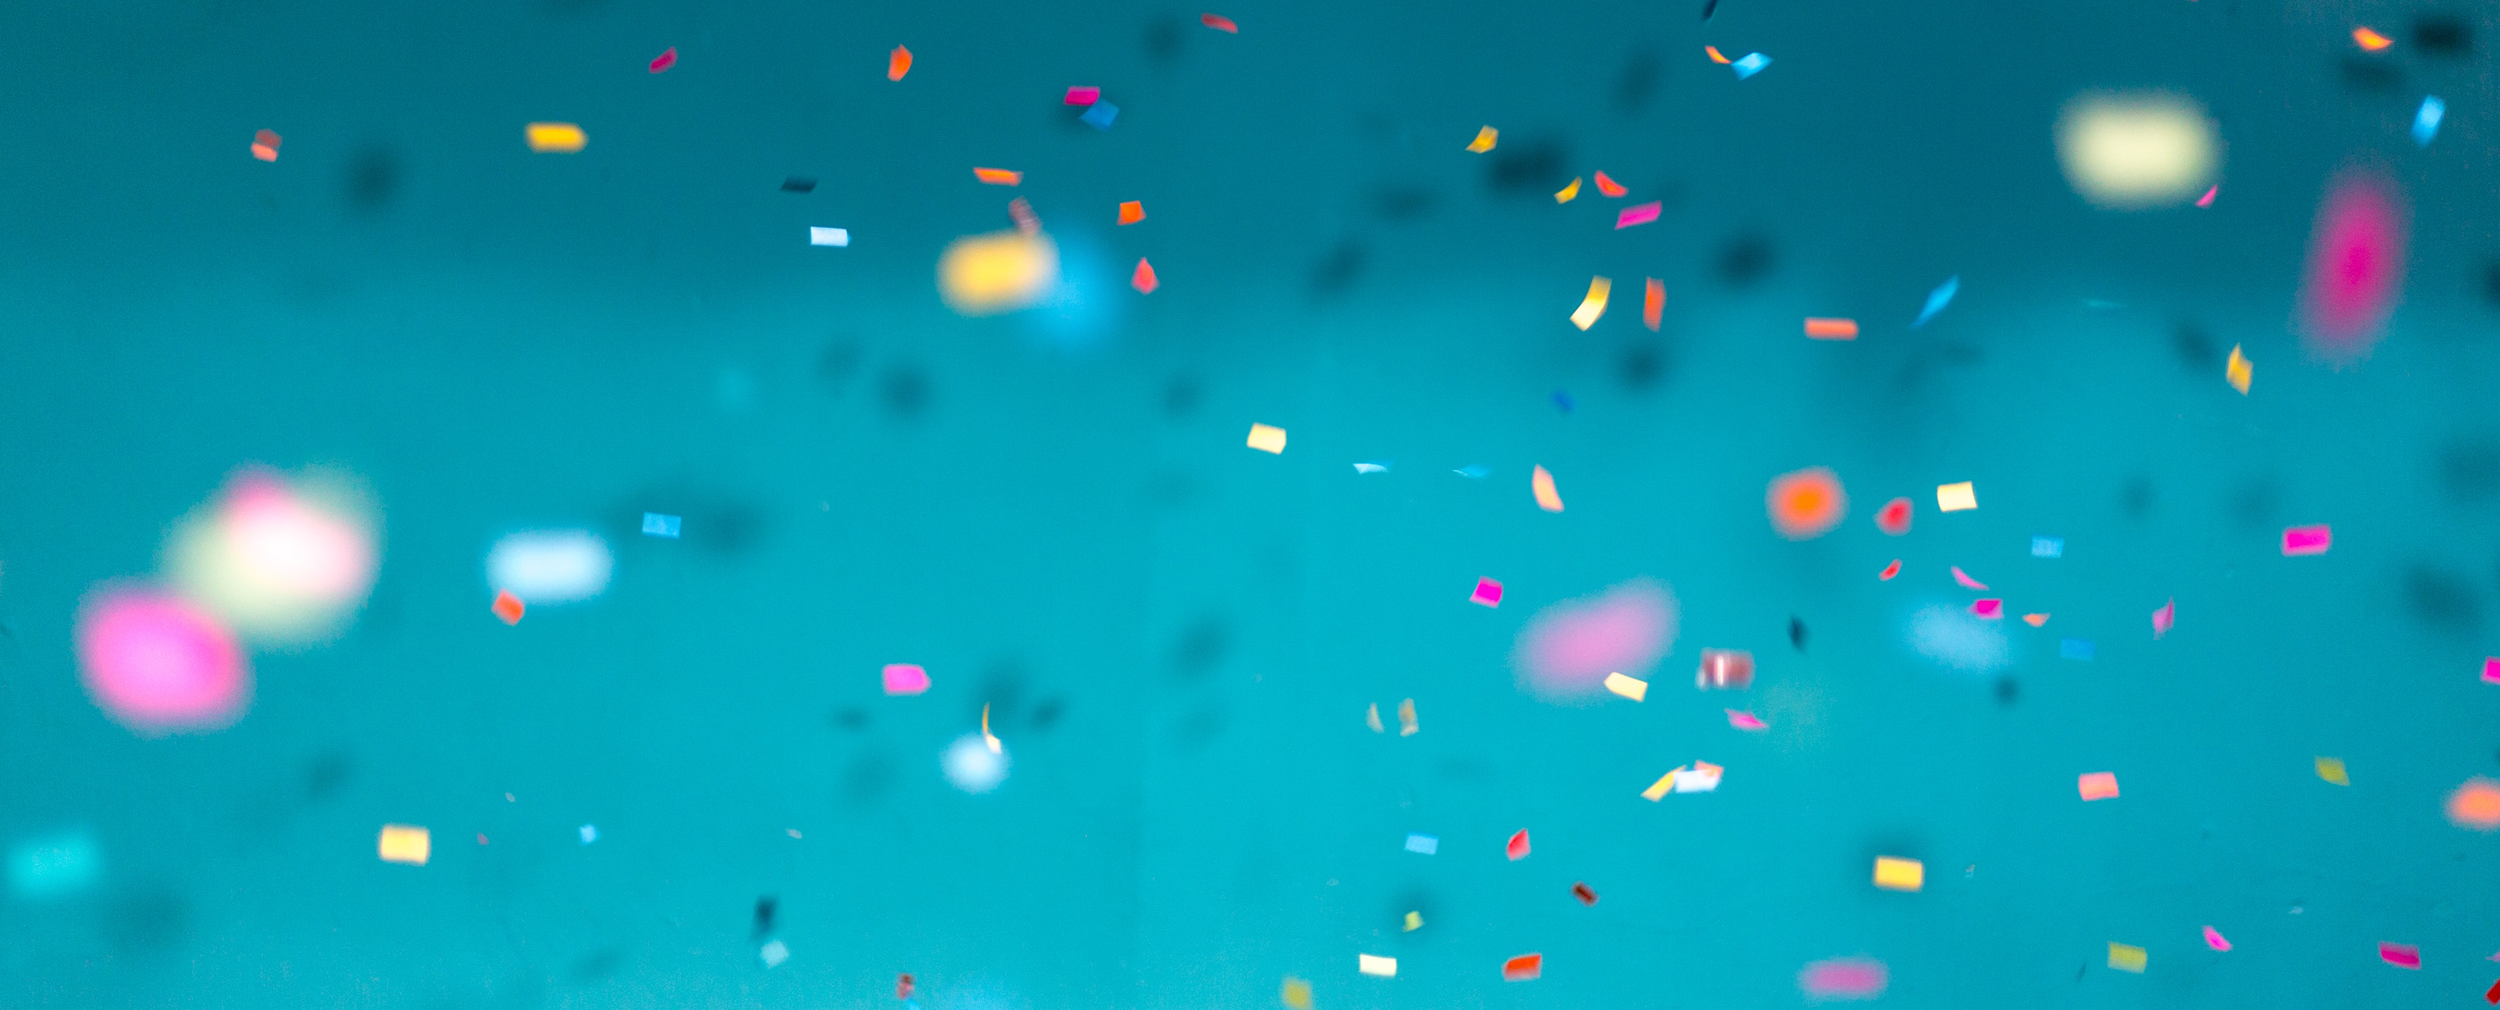 Paper colourful confetti floating in the air